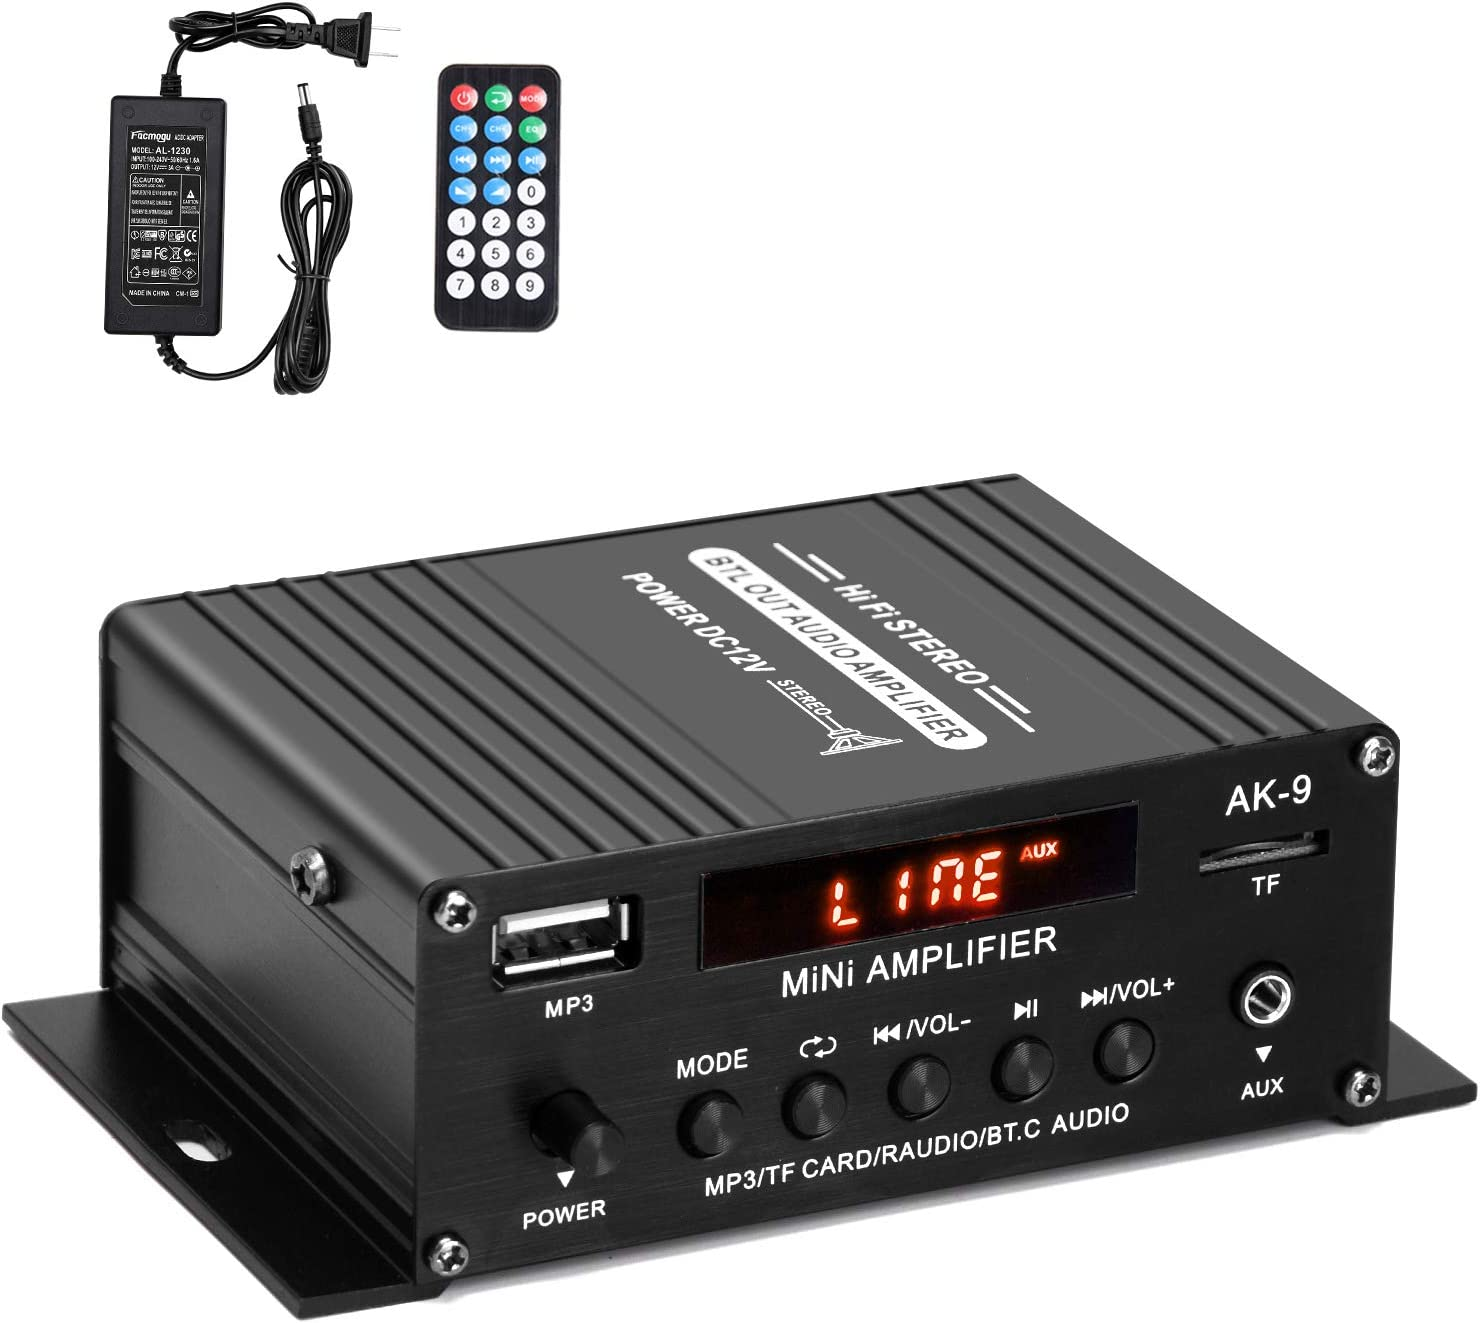 Facmogu AK9 Bluetooth Power Amplifier, Digital Power Audio Amplifier with 12V 3A Power Supply, Home Audio Player Amp Speaker with Remote Control